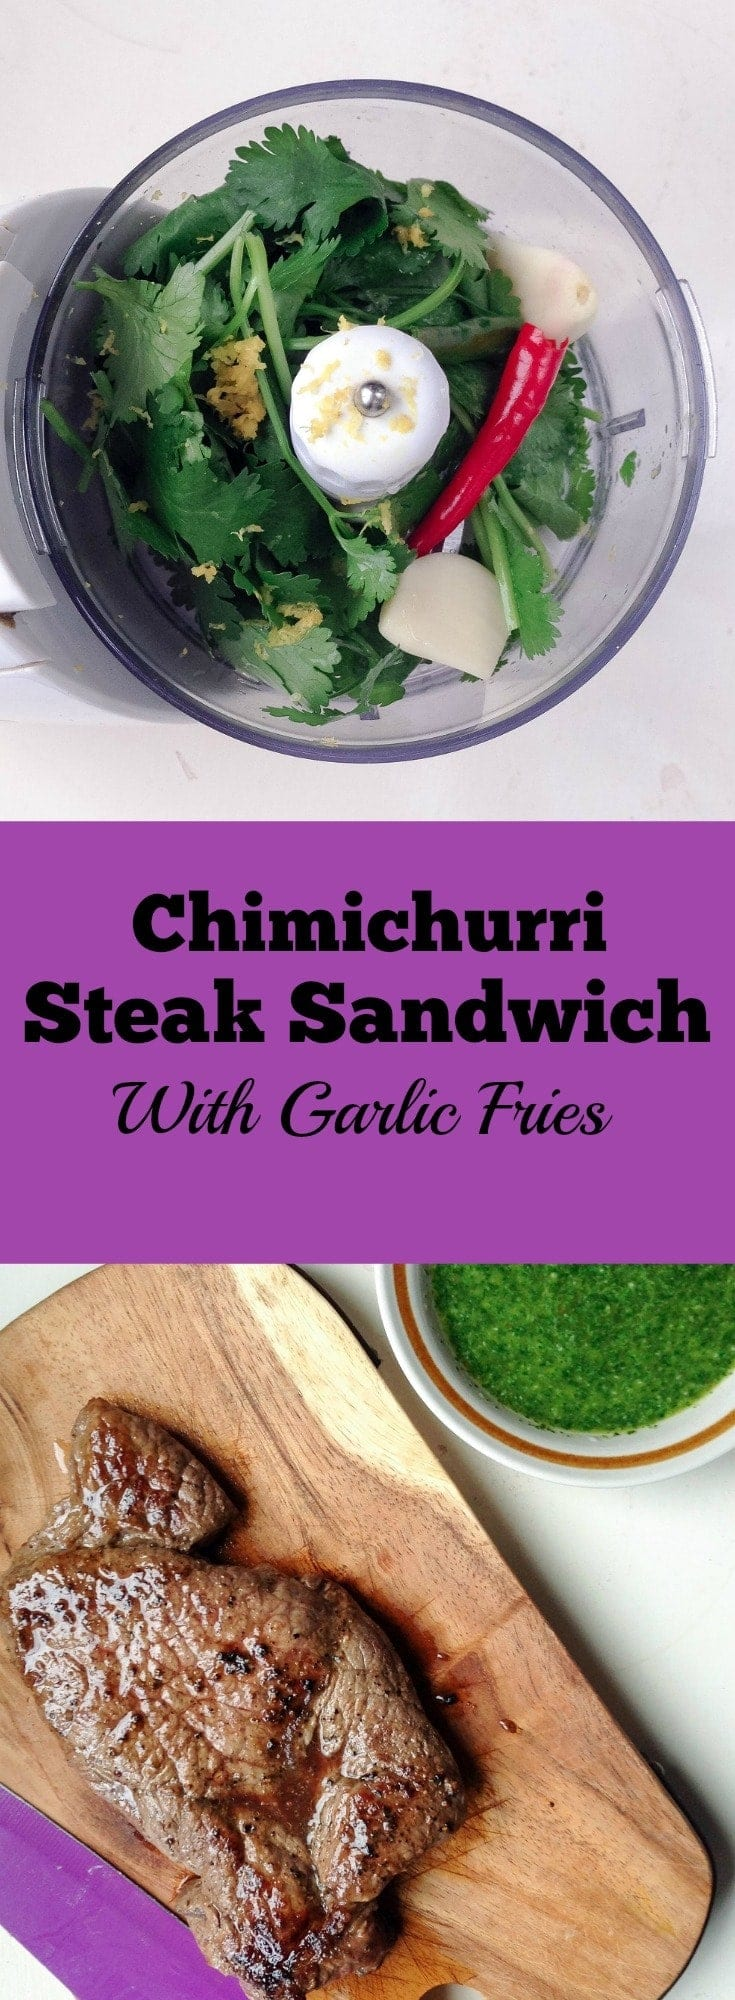 For this chimichurri steak sandwich the steak is sliced and served with caramelised onions, spinach leaves and a chimichurri dressing.